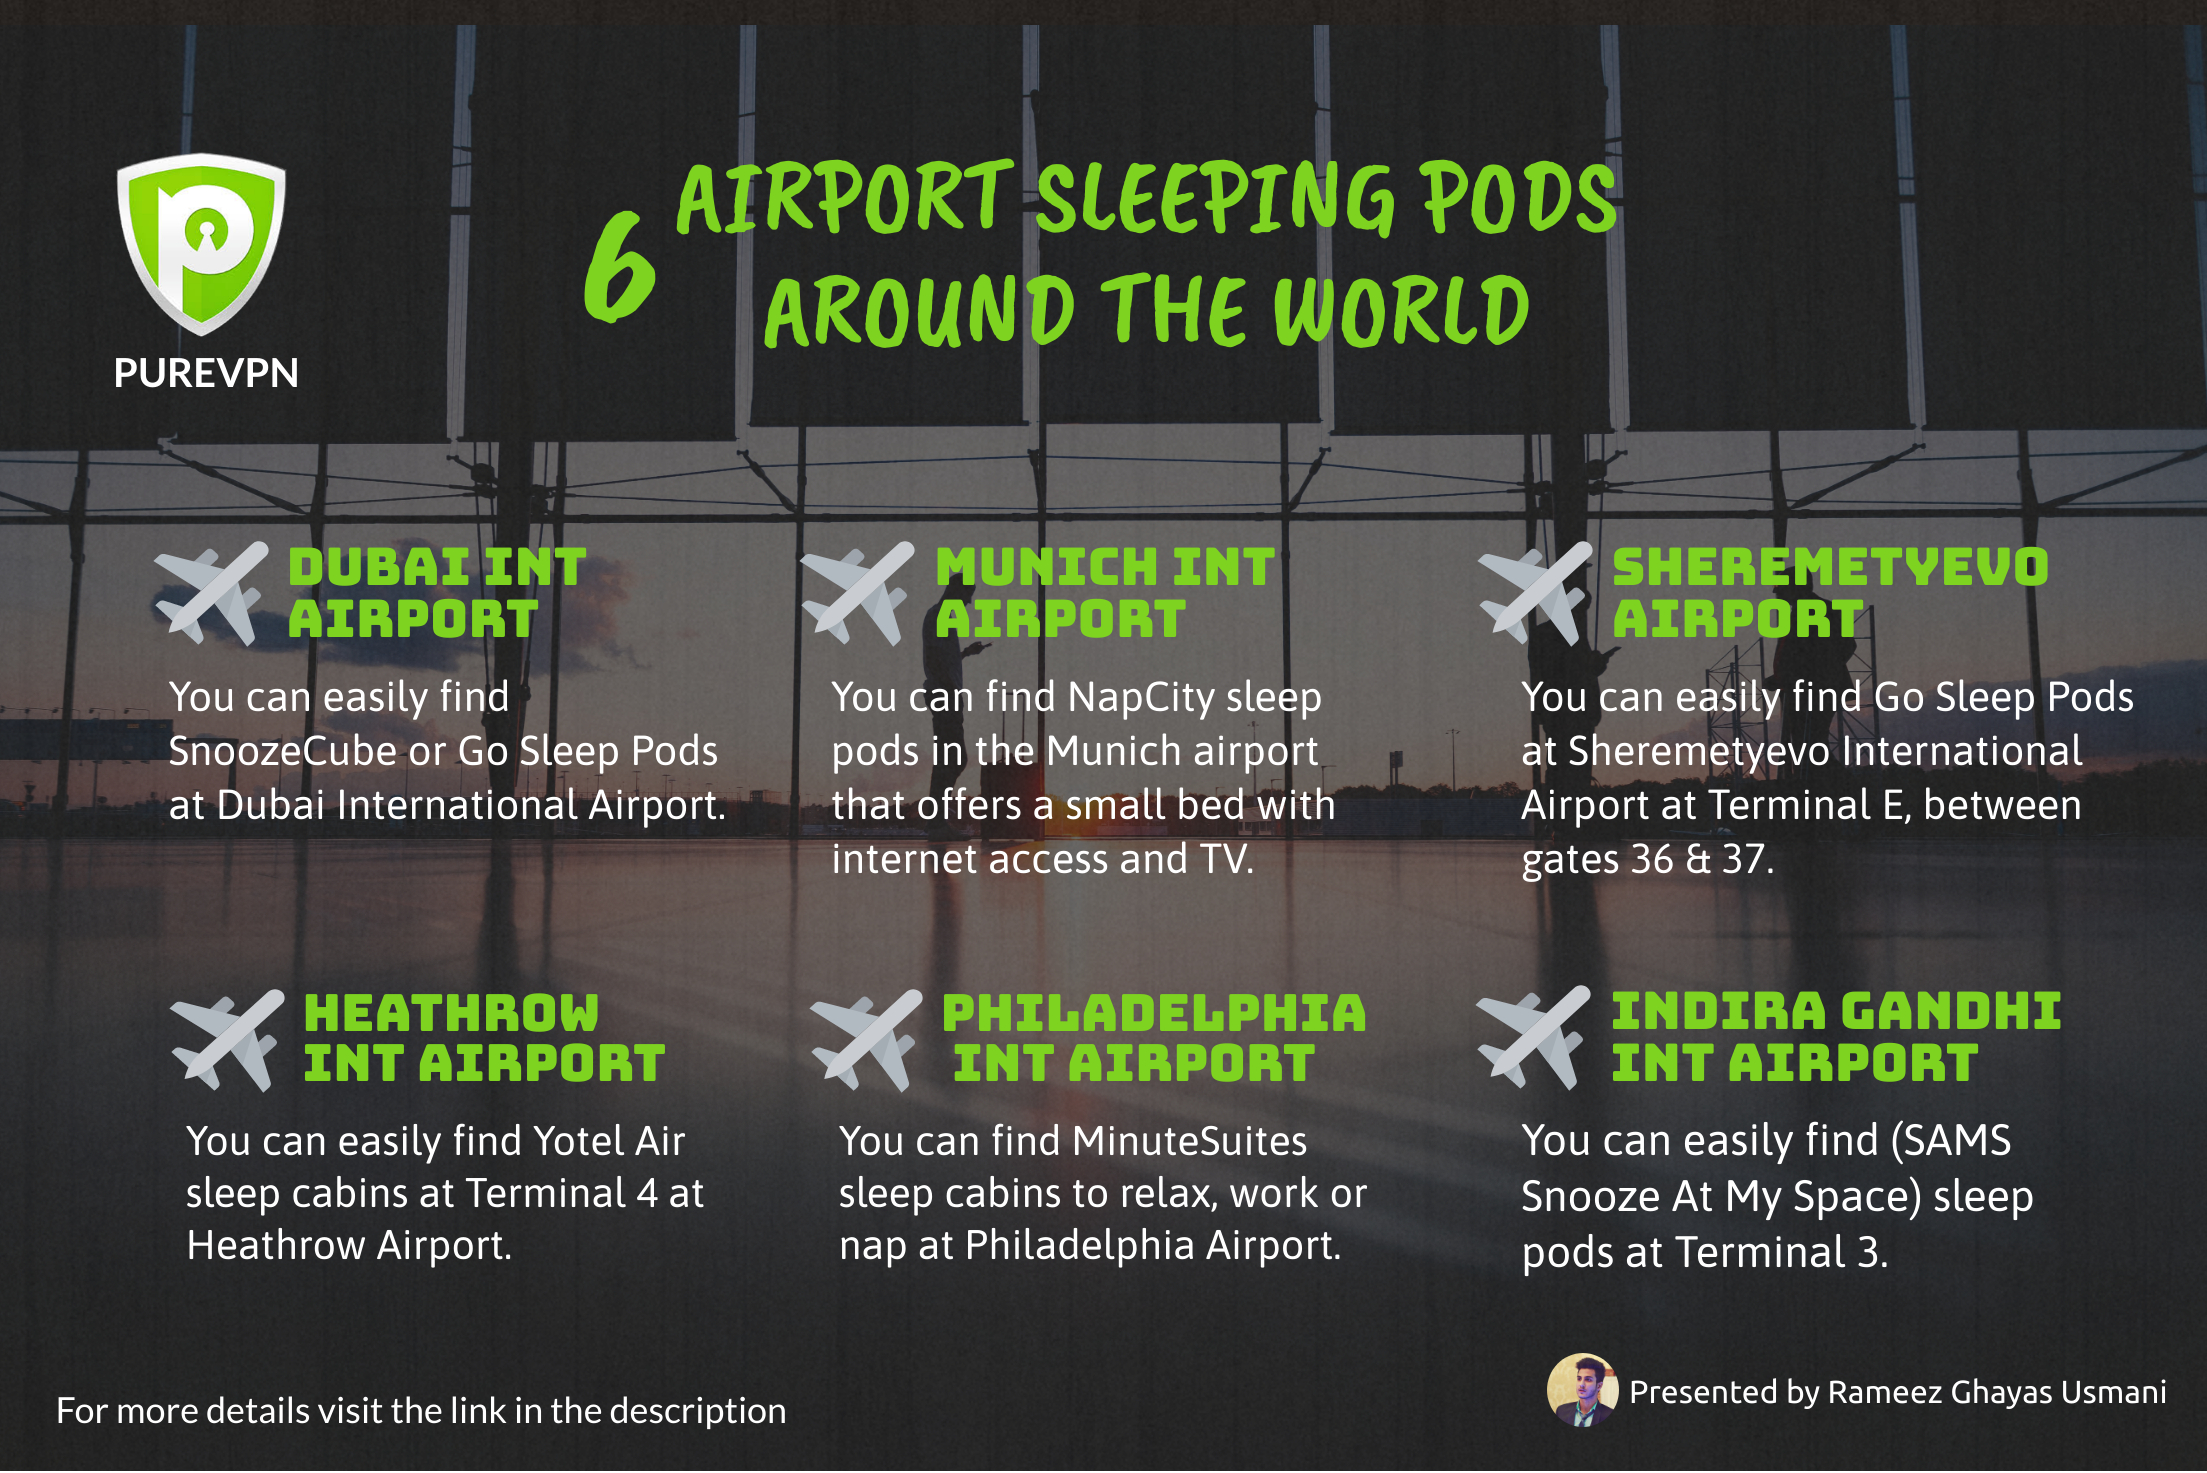 Airport Sleeping Pods